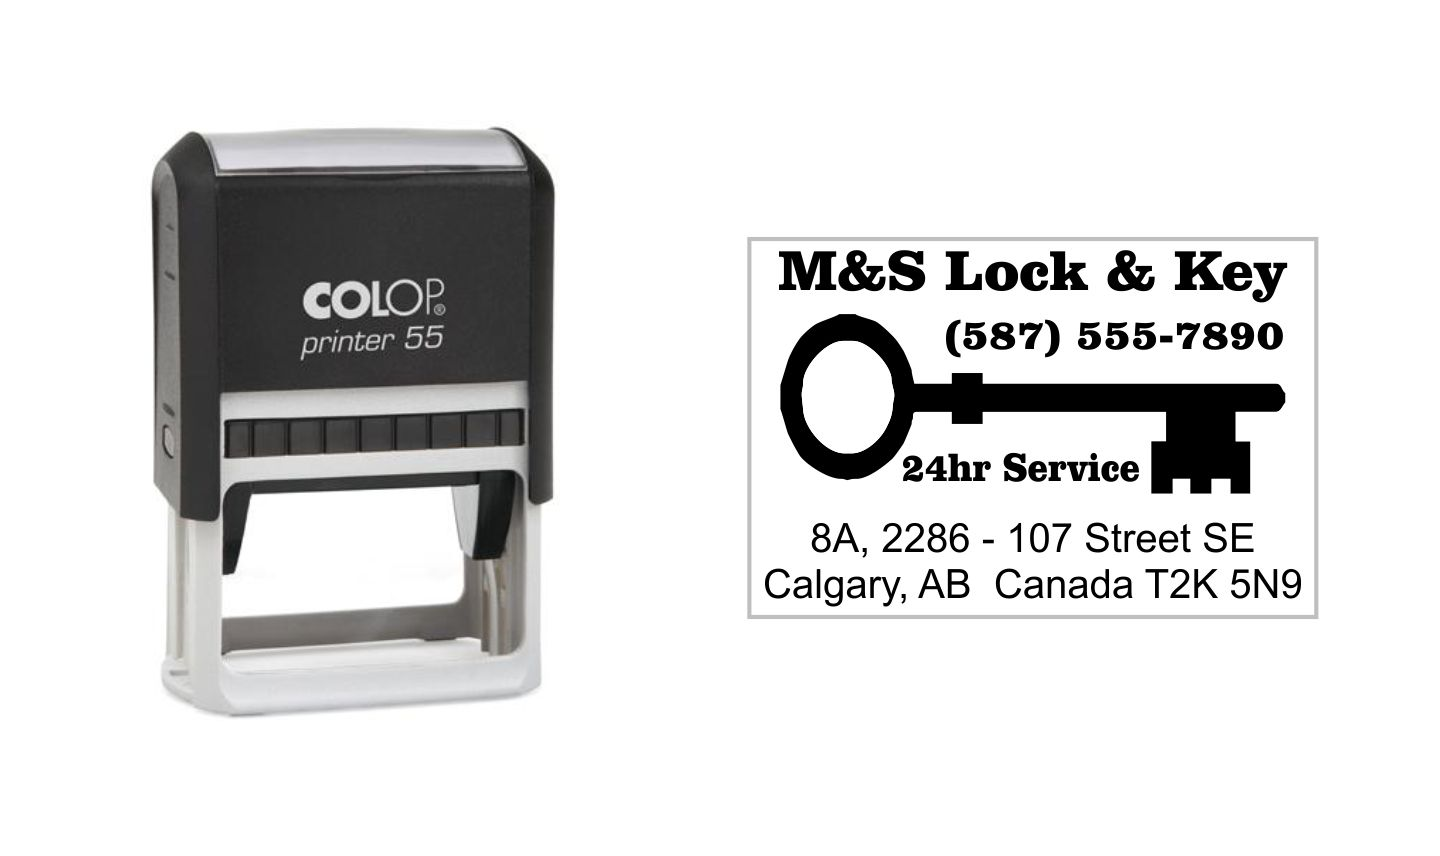 Colop Printer 55 Self Inking Stamp